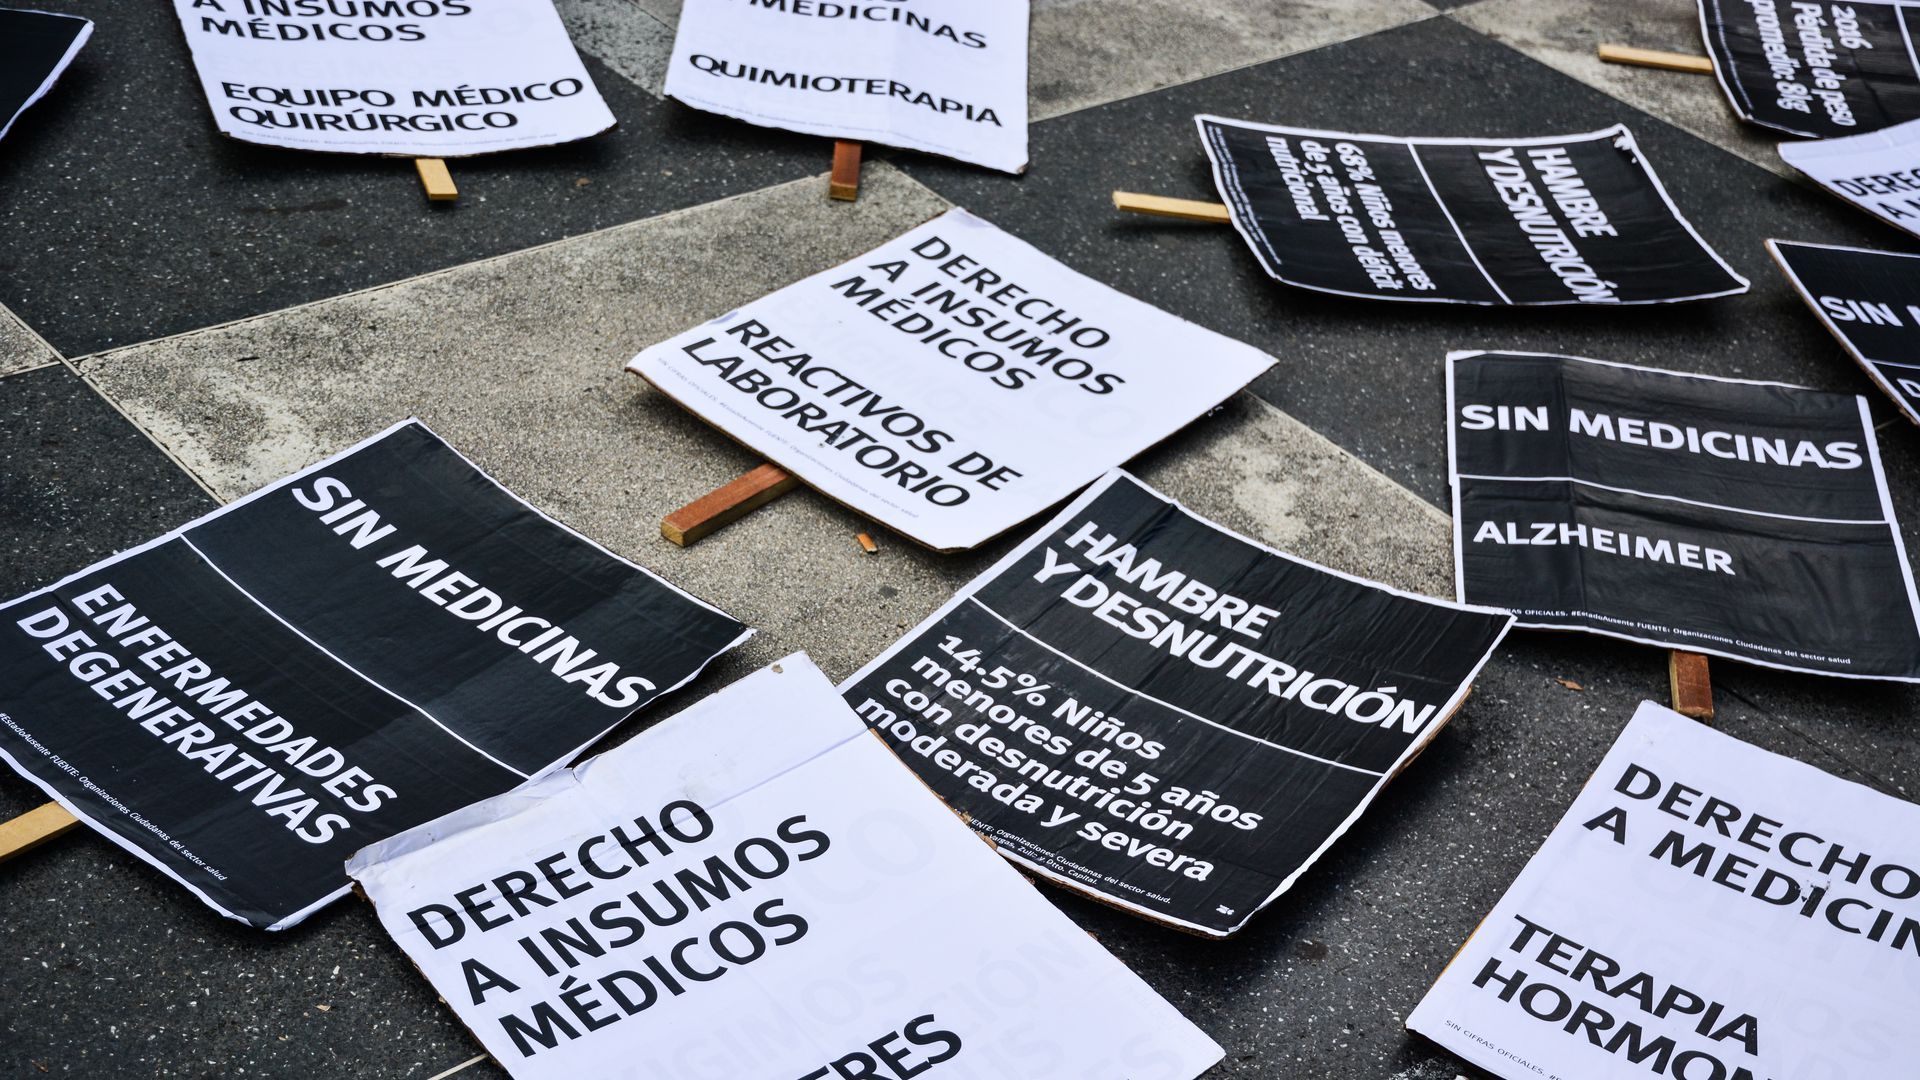 Protest signs in Caracas, Venezuela, where a drug shortage has exacerbated a malaria outbreak.